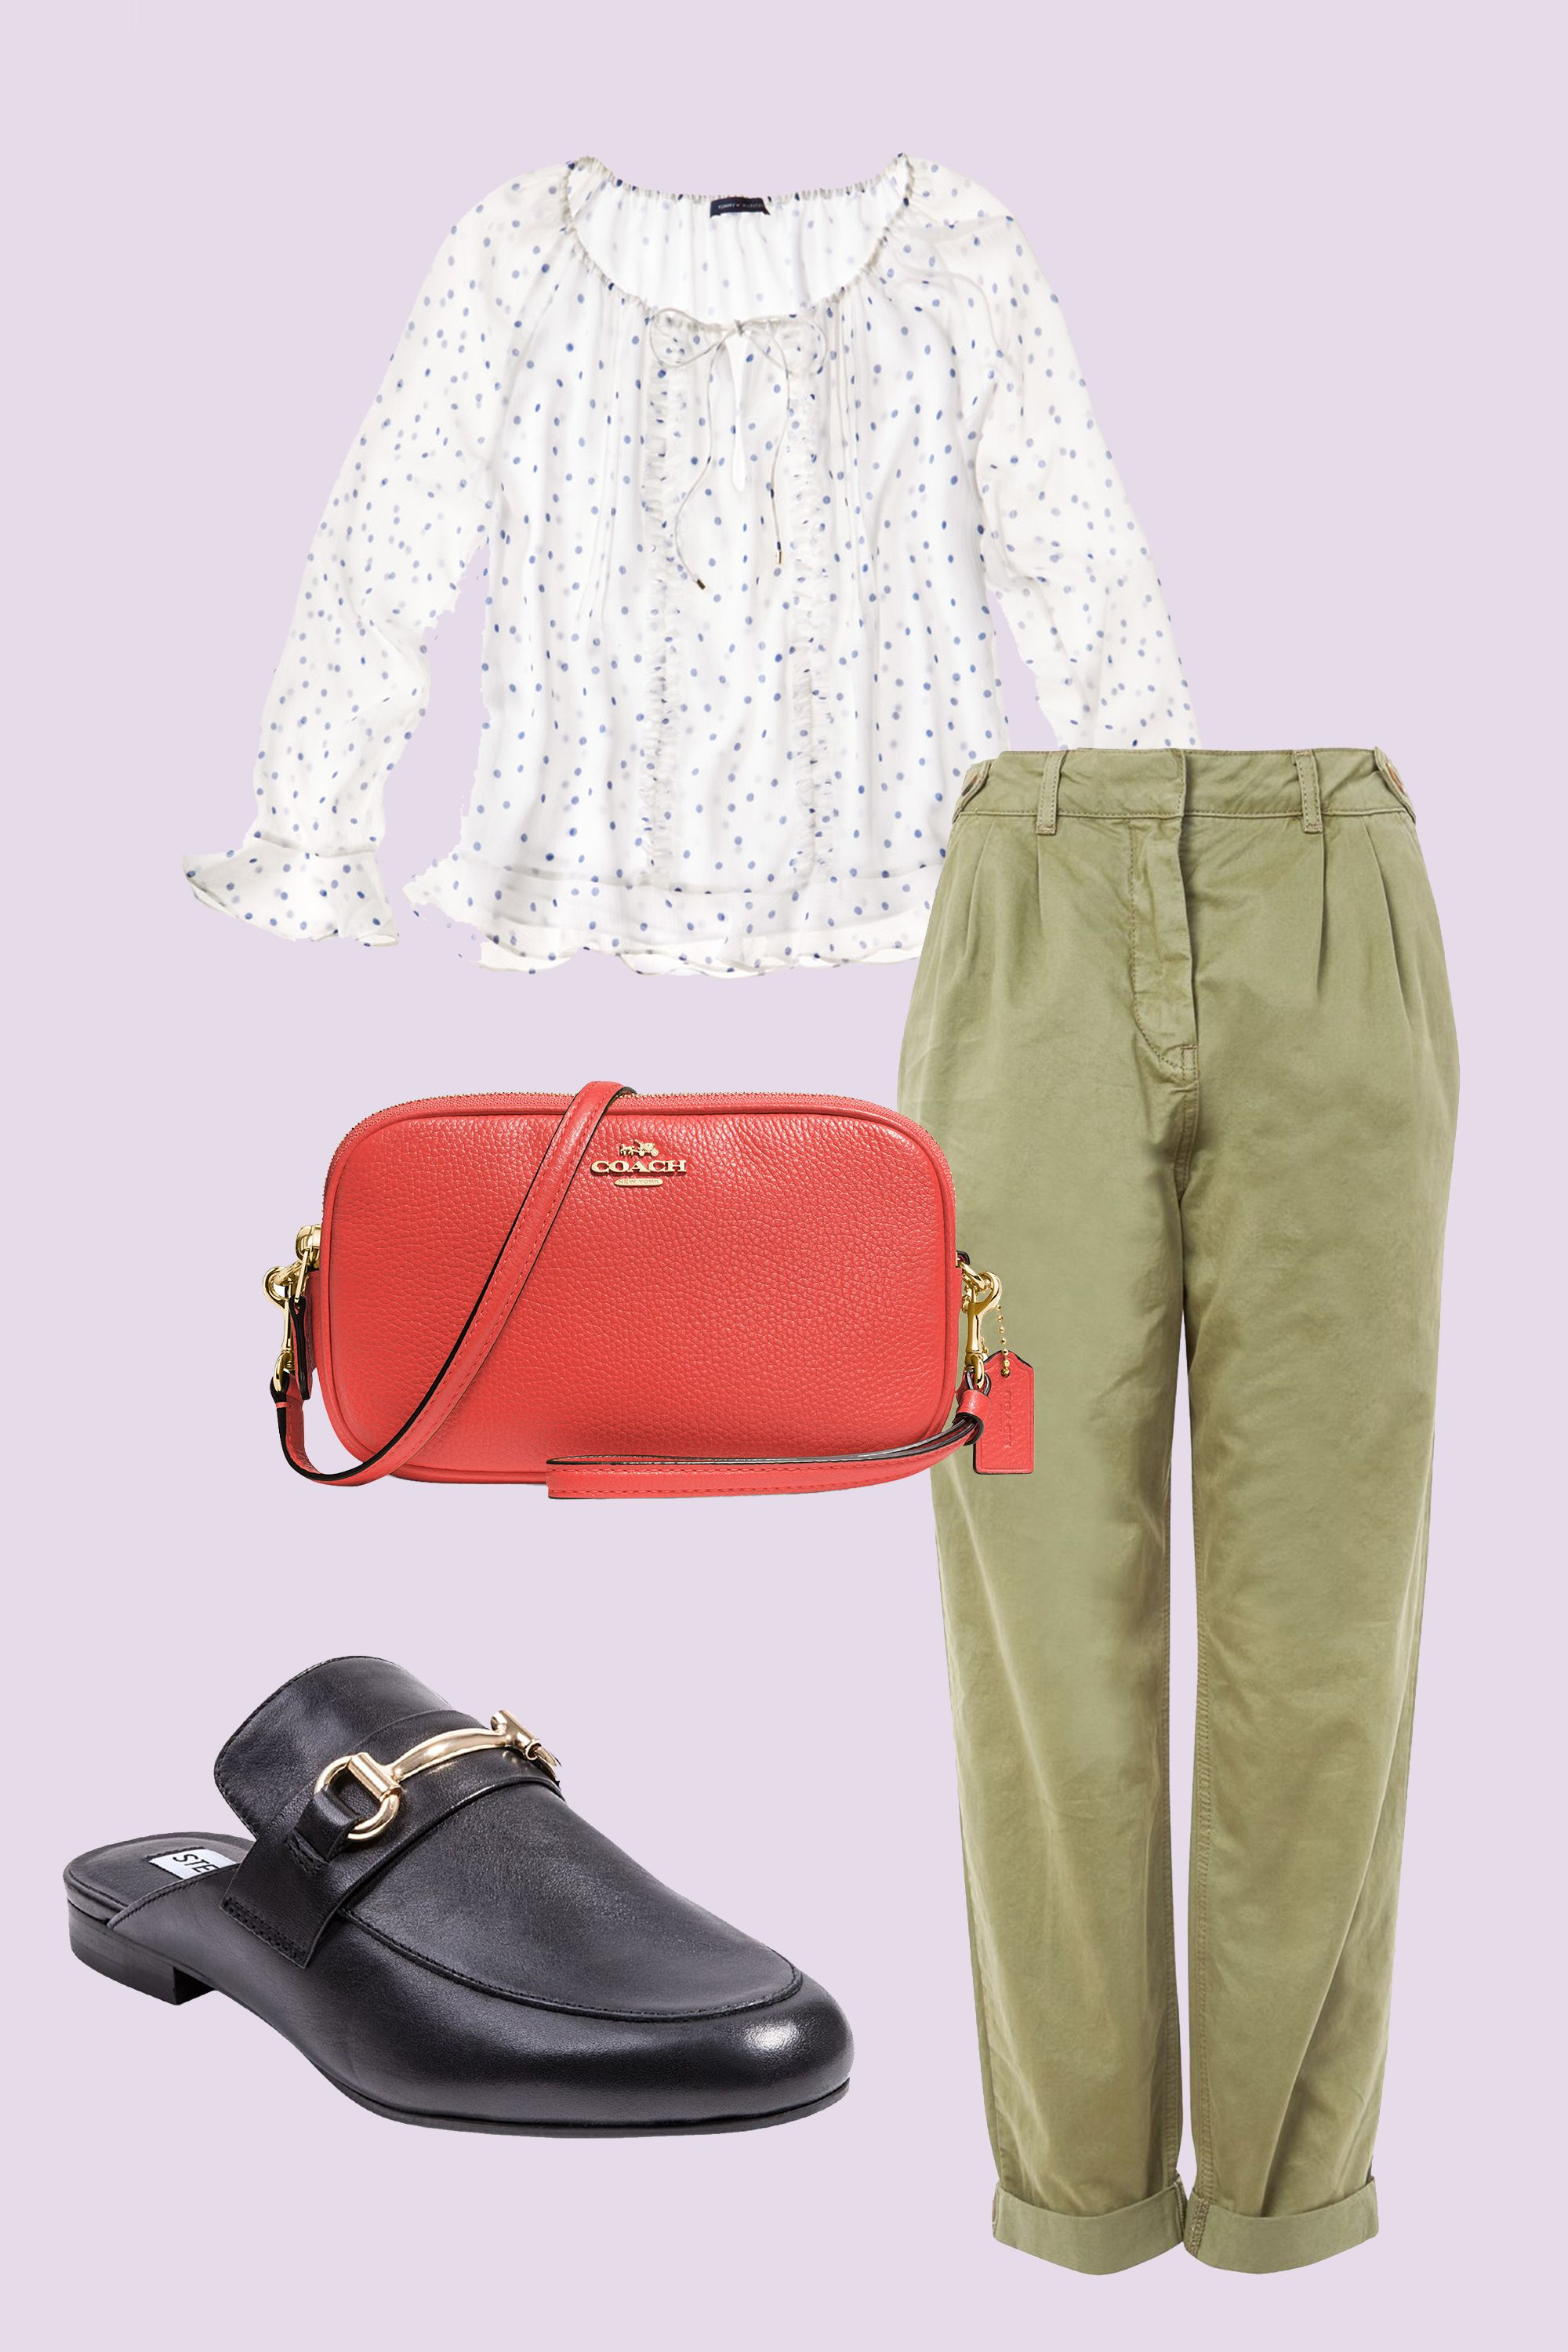 "<p>Temper the sweetness of a gauzy, ruffled top by pairing it with rugged, khaki-colored, boyfriend-fit pants and a sturdy slip-on mule. A cross body bag in a vivid hue keeps things carefree—just the way the weekend should be. </p><p><strong data-redactor-tag=""strong"" data-verified=""redactor"">BUY IT: </strong>Tommy Hilfiger top, $70; <a href=""https://www.macys.com/shop/product/tommy-hilfiger-ruffle-sleeve-top-created-for-macys?ID=4939981&CategoryID=37281&selectedSize=&cm_mmc=carat_dis-_-sep2_nopro_auth_rtw_ffash_tentpole_display_w7080033_11696-_-1339154-_-09052017_10052017"" target=""_blank"" data-tracking-id=""recirc-text-link"">macys.com</a>. Topshop trousers, $75; <a href=""http://us.topshop.com/en/tsus/product/new-in-this-week-2169940/new-in-fashion-6367520/tab-side-utility-trouser-6824231?bi=40&ps=20"" target=""_blank"" data-tracking-id=""recirc-text-link"">topshop.com</a>. Steve Madden mule, $79; <a href=""https://www.macys.com/shop/product/steve-madden-womens-kandi-slip-on-tailored-mules?ID=4624288&CategoryID=50295&swatchColor=Black%20Leather%20Multi&cm_mmc=carat_dis-_-sep2_nopro_auth_rtw_ffash_tentpole_display_w7080033_11696-_-1339154-_-09052017_10052017"" target=""_blank"" data-tracking-id=""recirc-text-link"">macys.com</a>. Coach clutch, $165; <a href=""https://www.macys.com/shop/product/coach-crossbody-clutch-in-pebble-leather?ID=4890522&CategoryID=25300&selectedSize=#fn=HANDBAG_STYLE%3DCrossbody%26sp%3D1%26spc%3D36%26ruleId%3D78